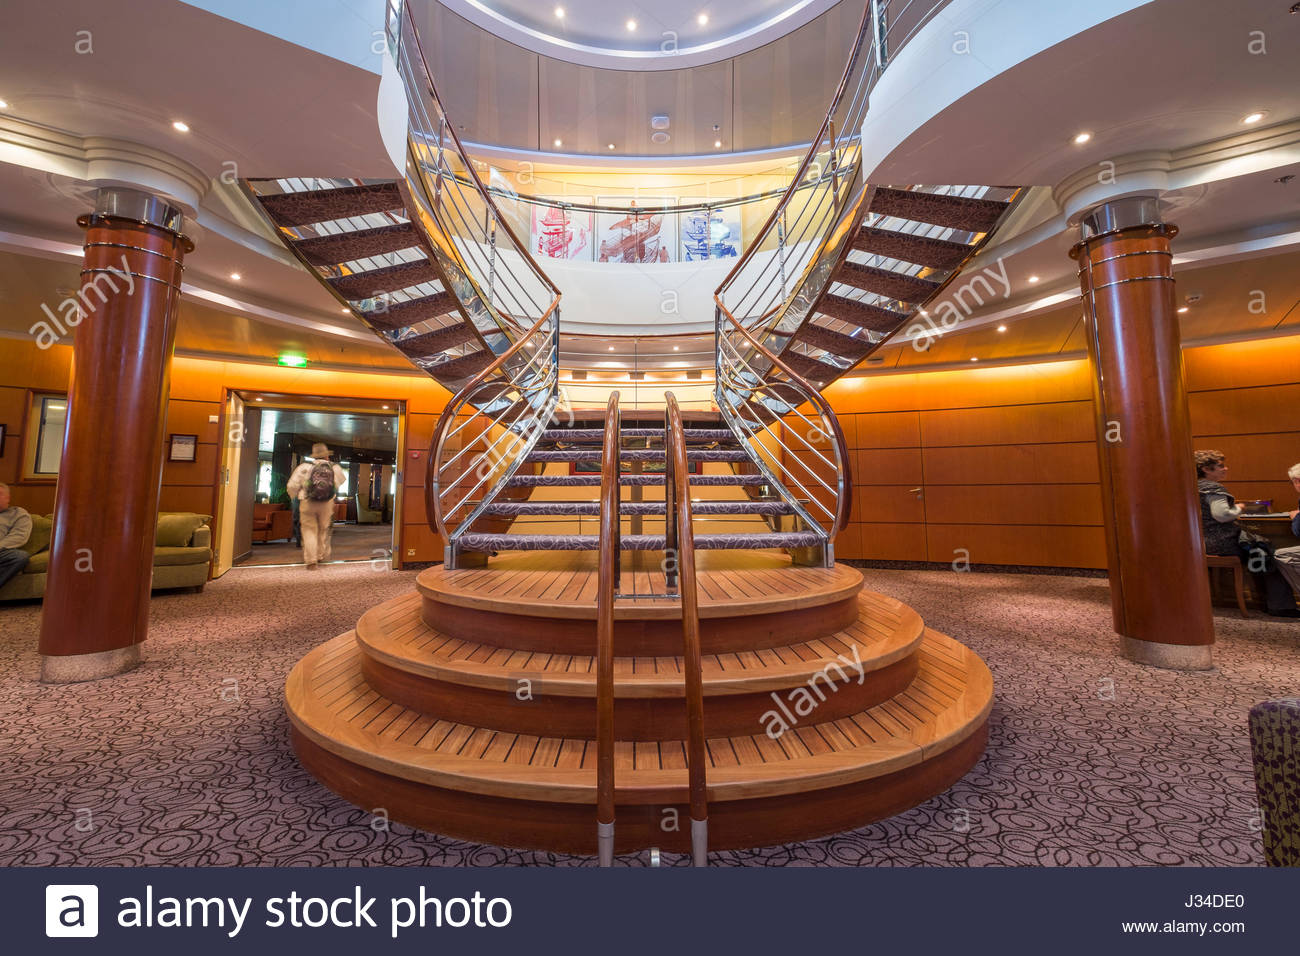 Ornate Staircase In The Atrium Aboard The Regent Seven Seas Mariner Cruise  Ship, North Atlantic